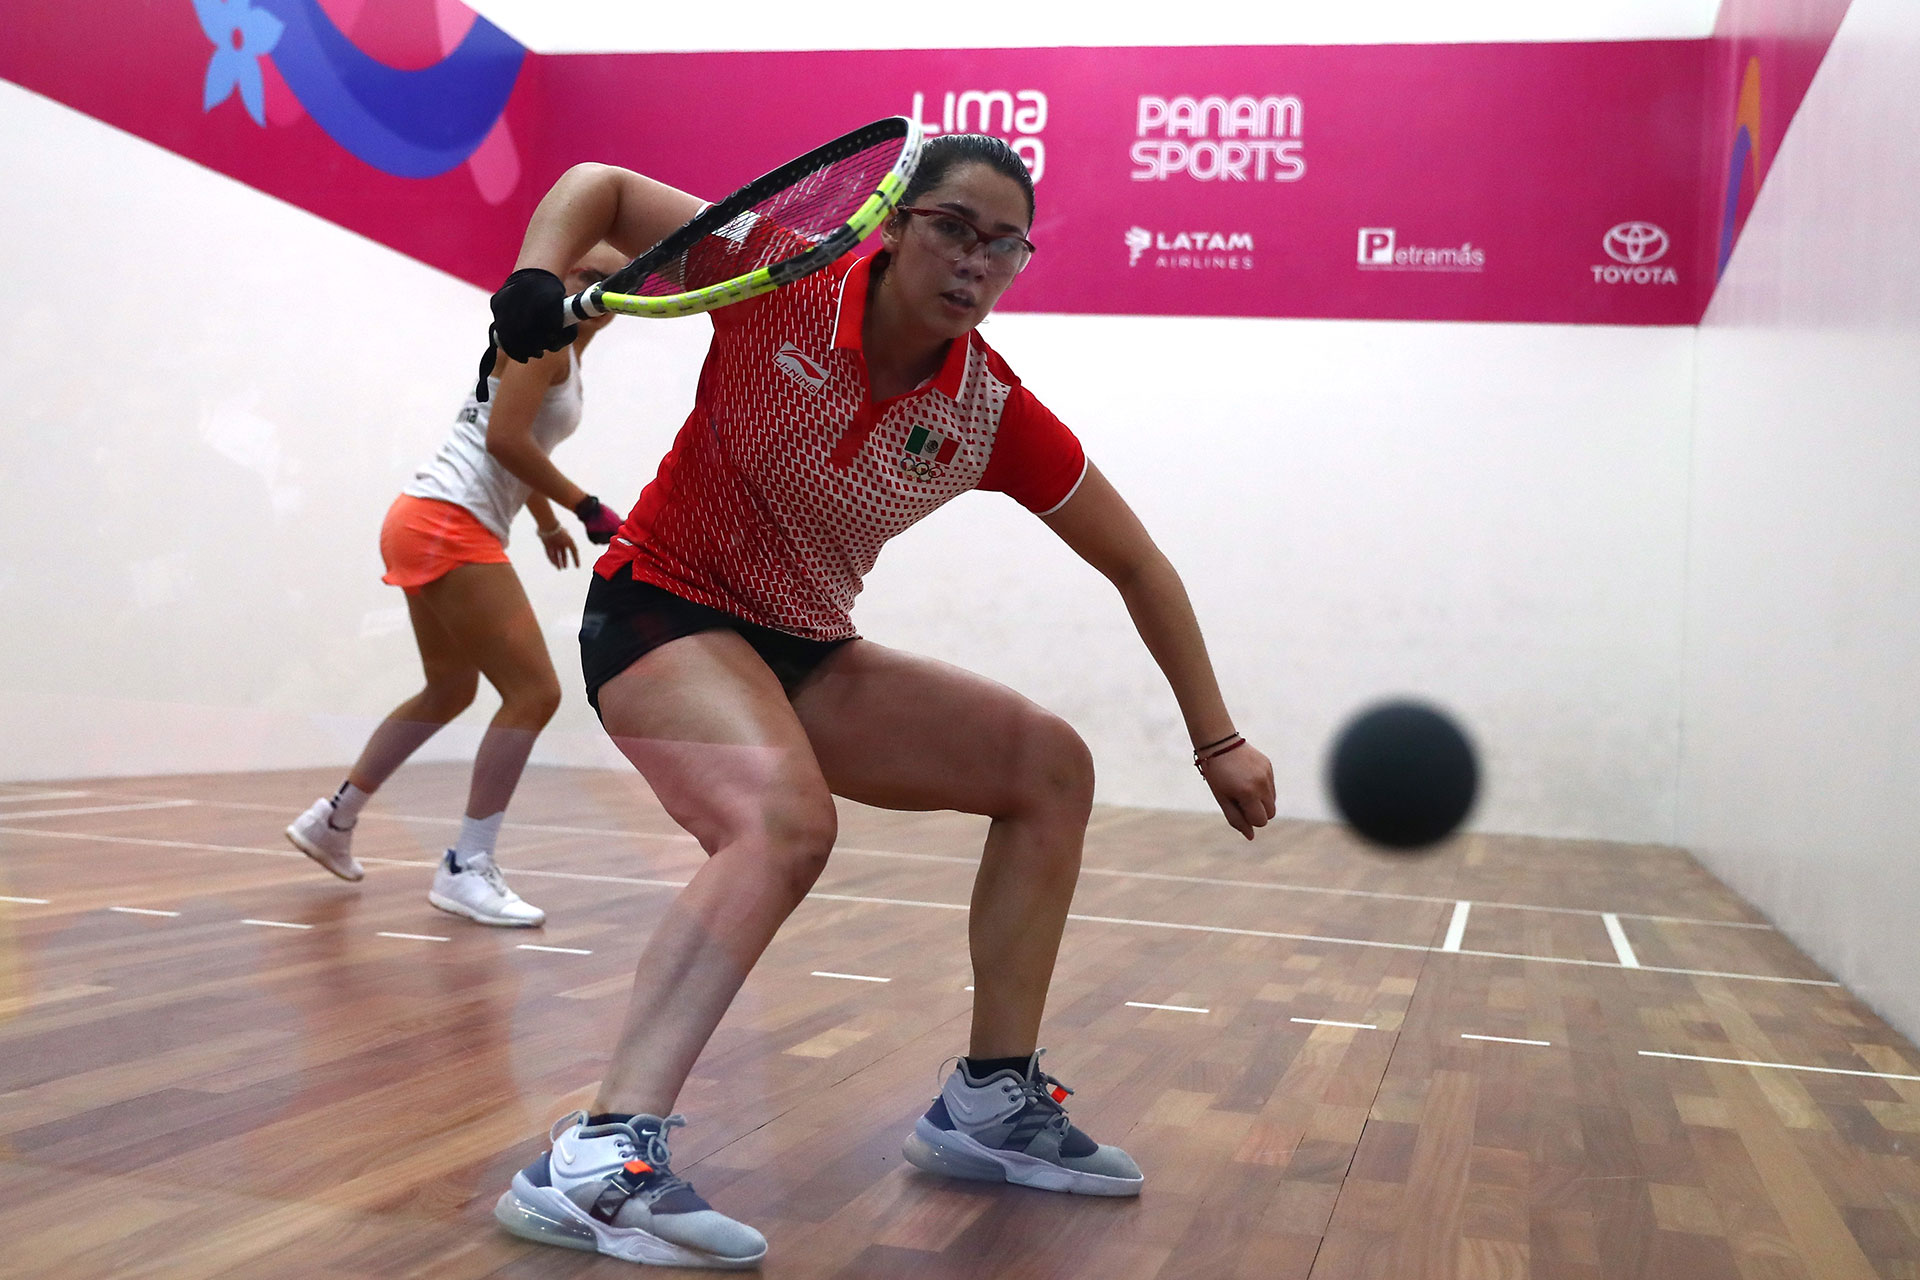 XVIII Pan American Games - Lima 2019 - Racquetball - Women's Team Gold Medal - Racquetball Courts, Lima, Peru - August 10, 2019. Argentina's Natalia Mendez and Mexico's Montserrat Meji in action. REUTERS/Pilar Olivares